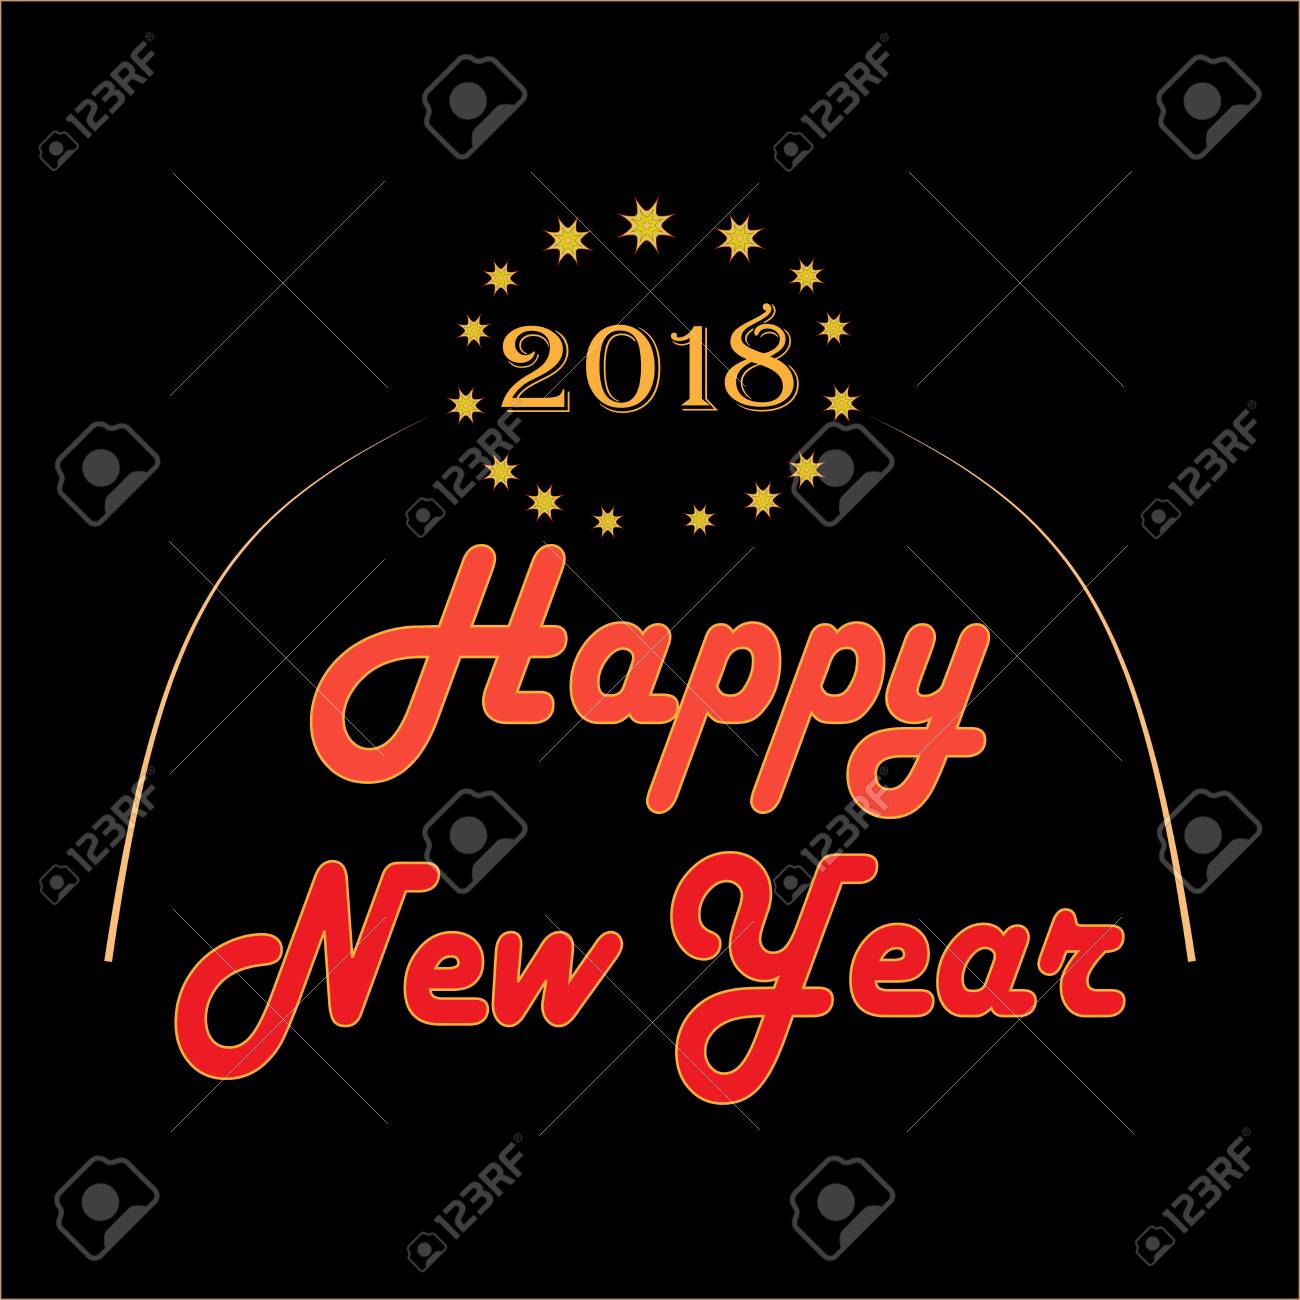 happy new year hand lettering and 2018 on black background fashion graphic background design